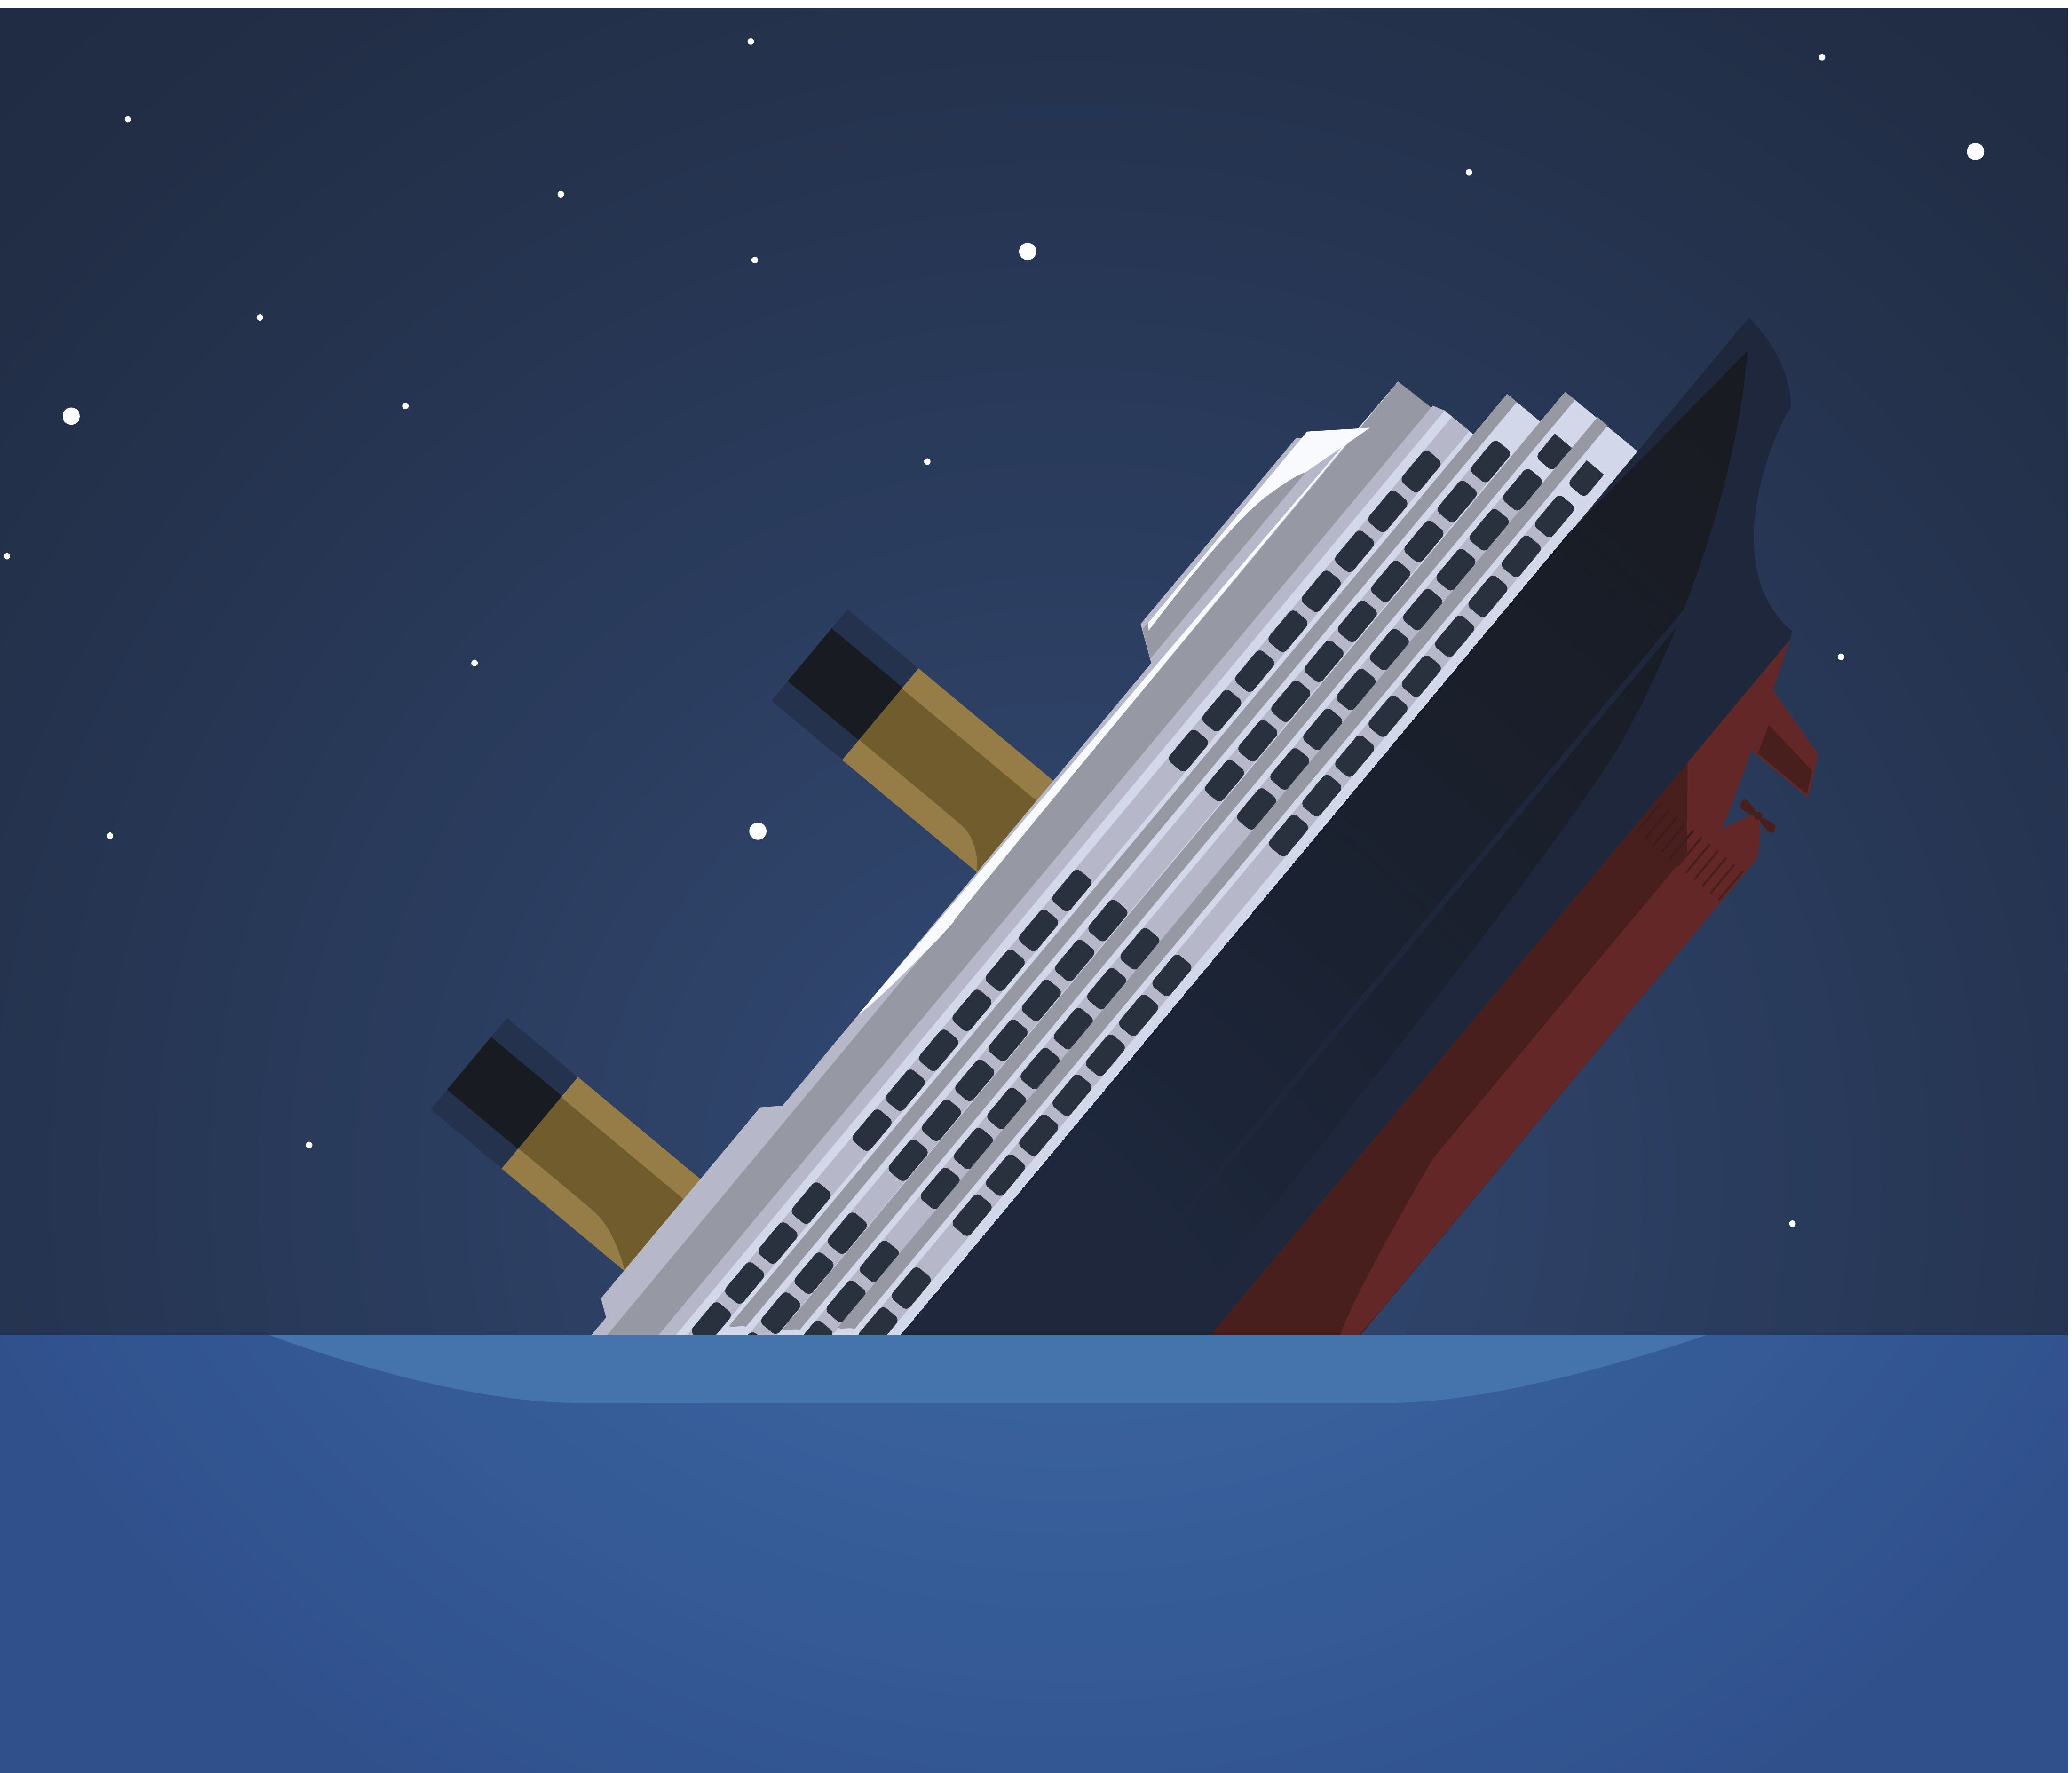 Titanic Iceberg Transatlantic Sank, vector illustration cartoon.